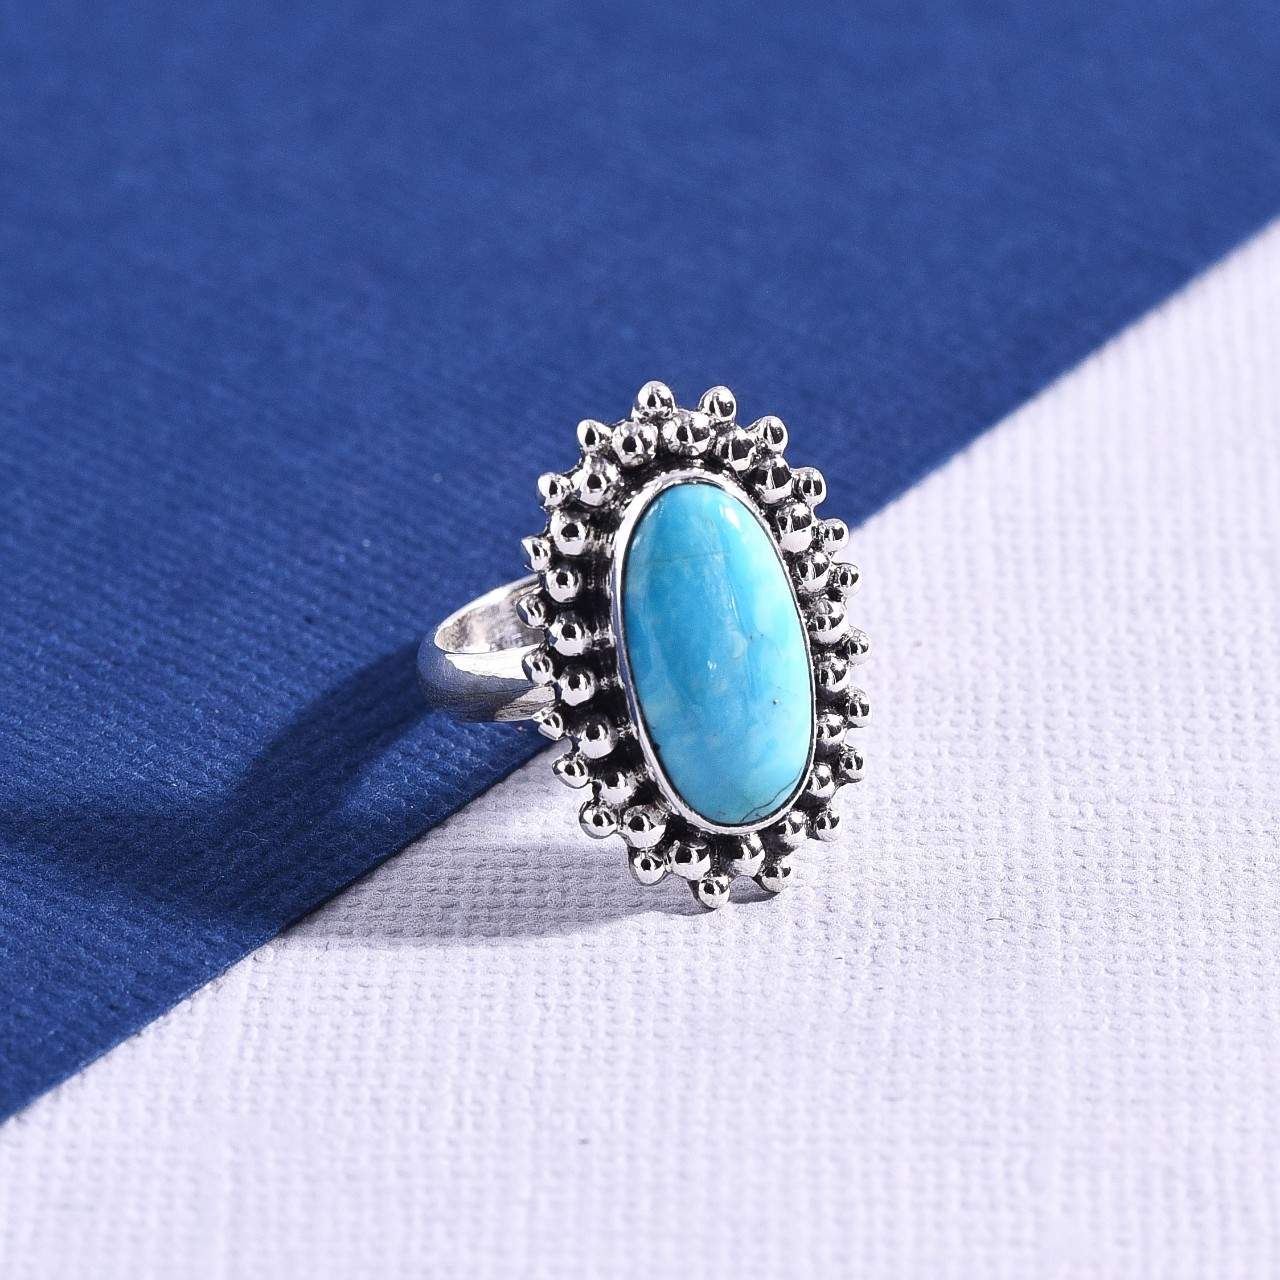 Product Image 1 - Sterling Silver Arizona Turquoise Ring  Size